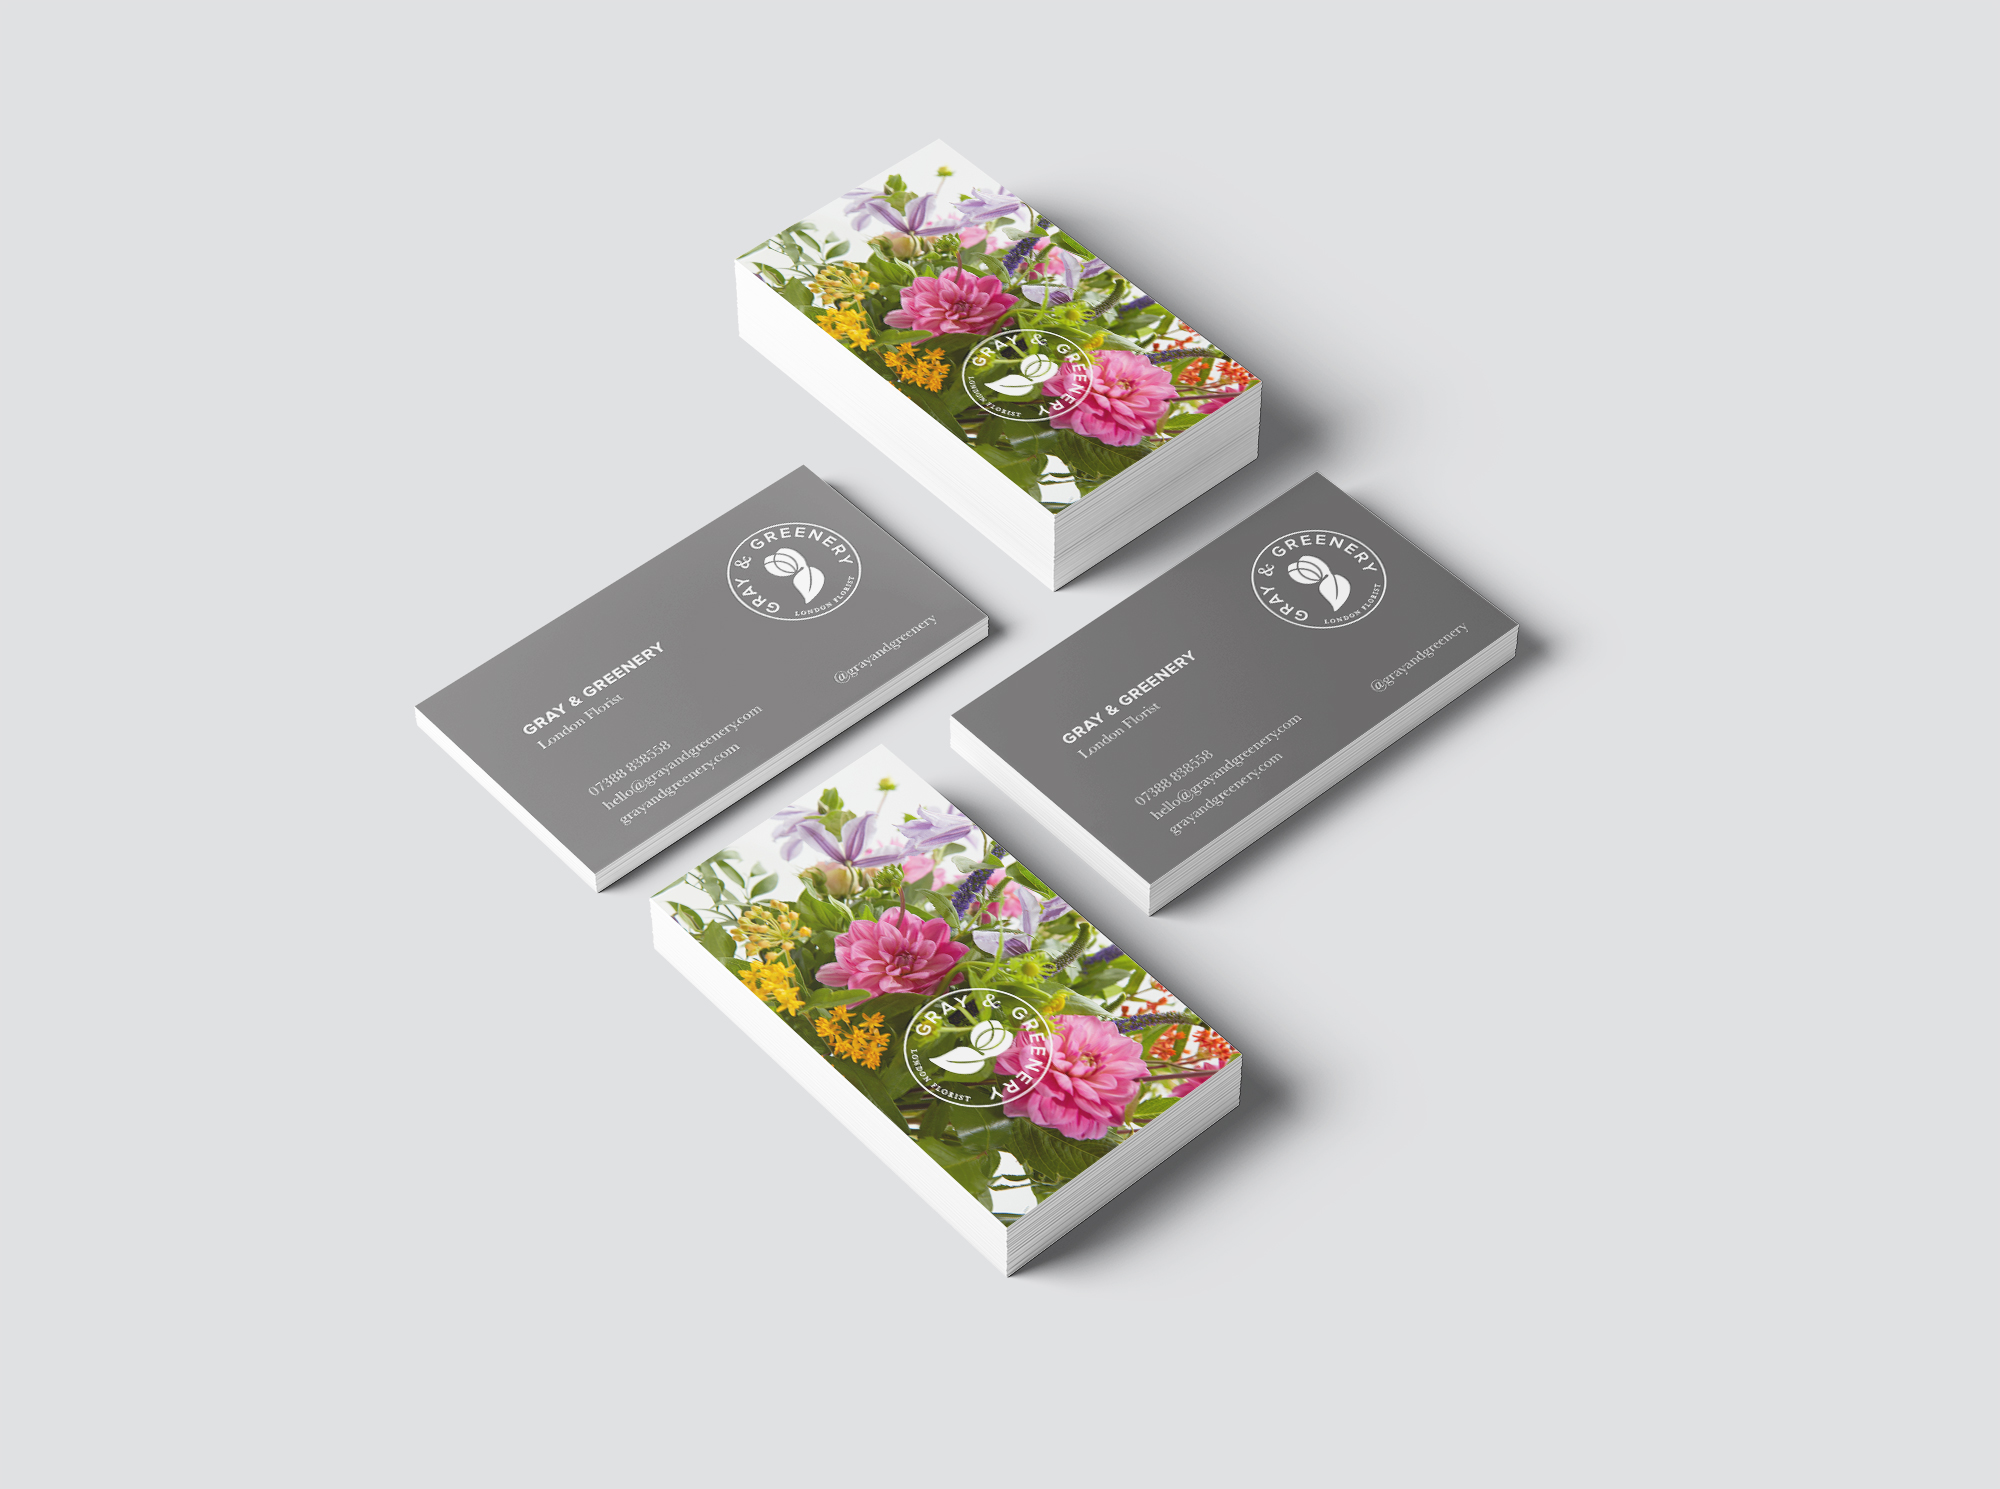 Gray-Greenery-Business-Card-by-ALSO-Agency-01.jpg